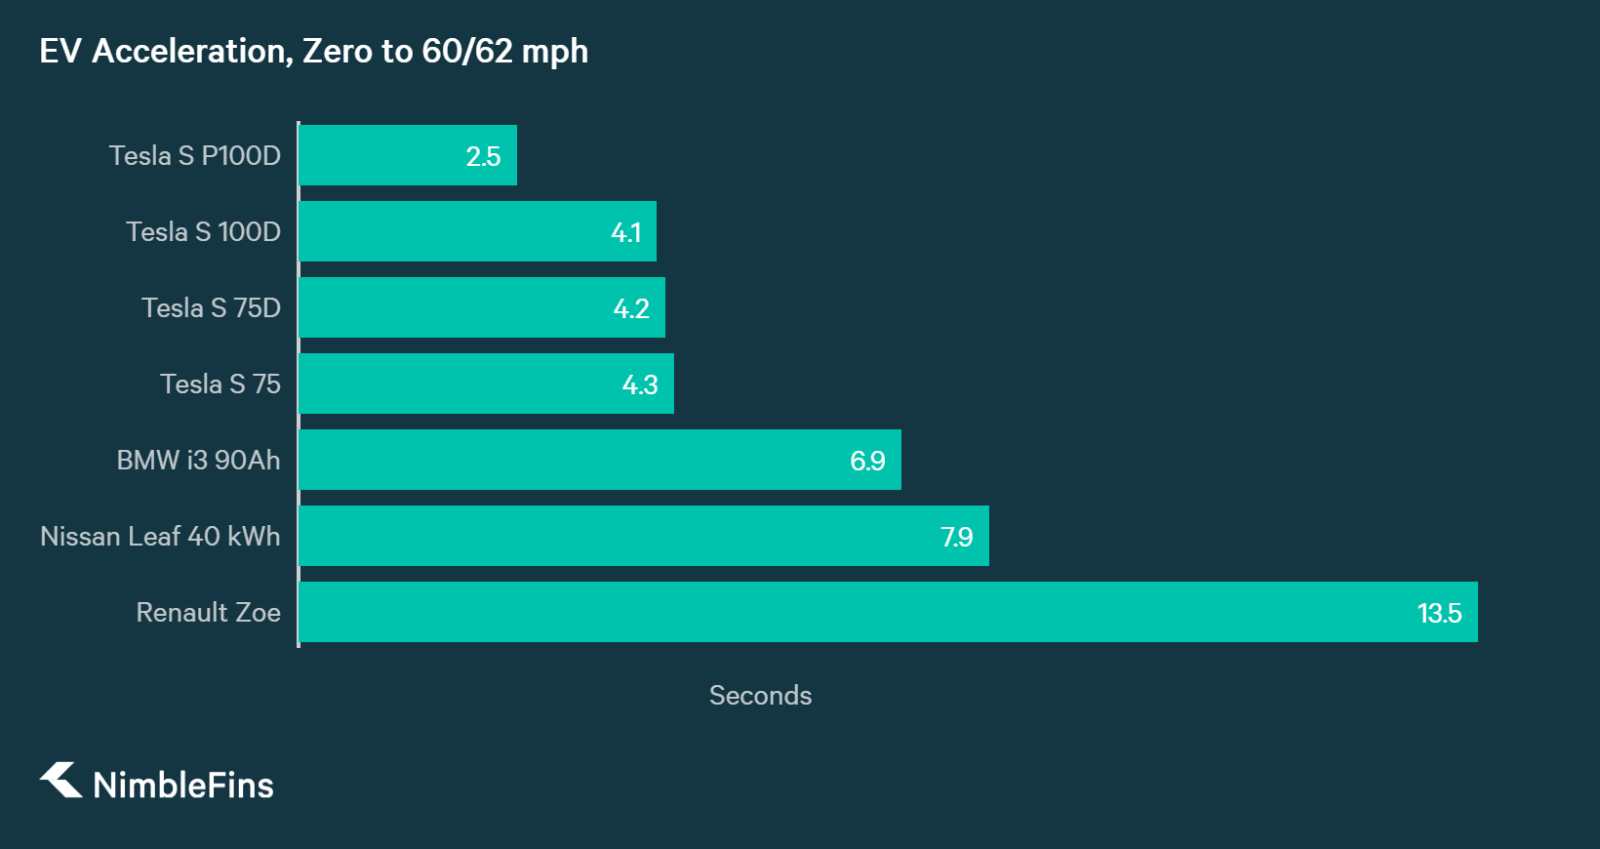 chart showing 0 to 60/62 mph for UK EVs